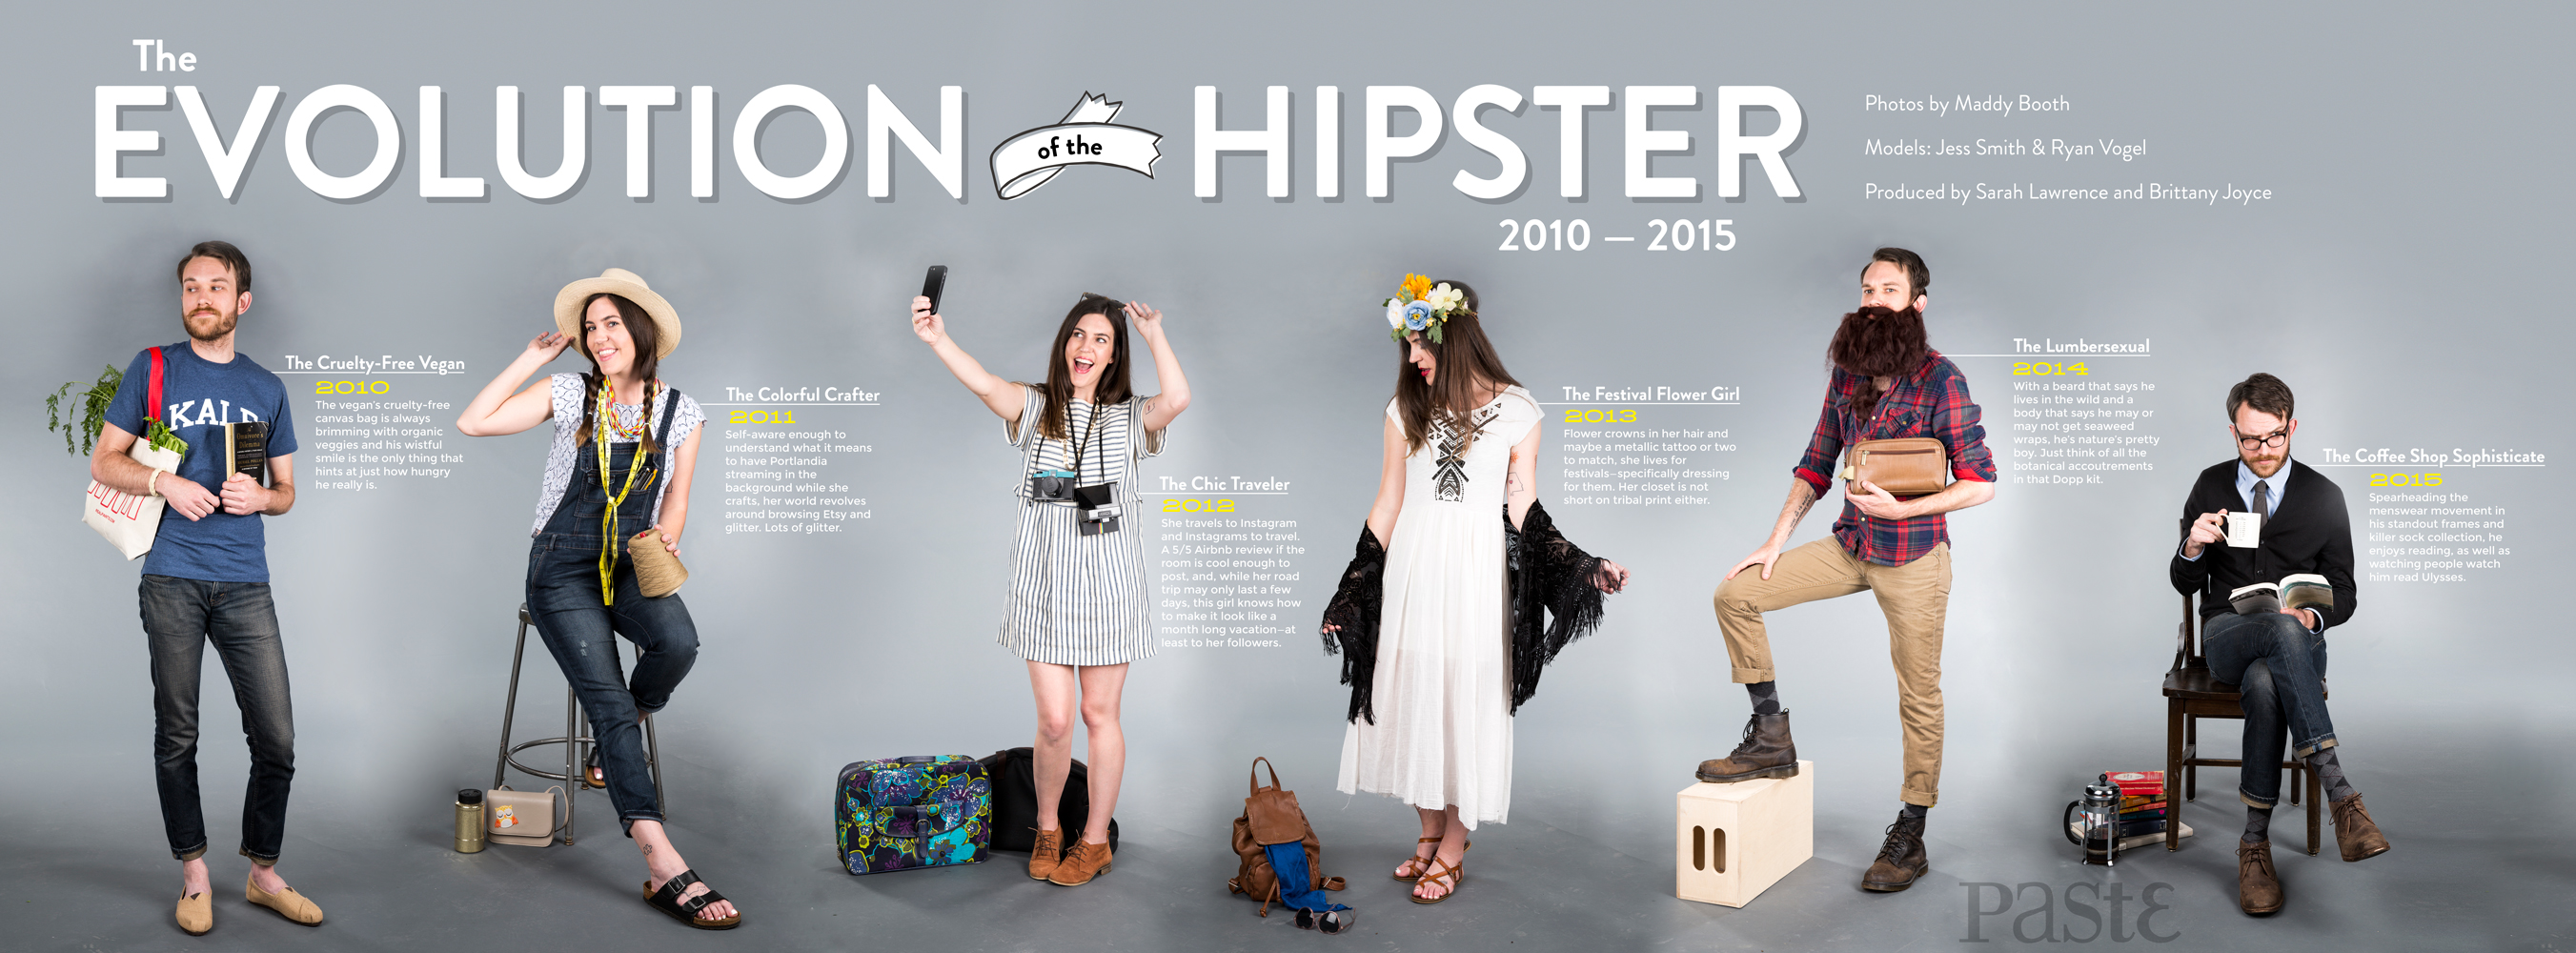 "Graphic shows ""The Evolution of the Hipster"" from 2010-2015 showing white men and women in various outfits. 2010 is ""The Cruelty-Free Vegan"" and shows a man wearing a ""KALE"" shirt with a tote bag of produce. 2011 is ""The Colorful Crafter"" and shows a woman sitting on a stool wearing overalls, Birkenstocks, and a sunhat with a tape measure around her neck. 2012 is ""The Chic Traveler"" and shows a woman taking a selfie with her iPhone with two cameras hanging around her neck. 2013 is ""The Festival Flower Girl"" and has a woman with a shawl around her elbows and is wearing strappy sandals, a flowy white dress, and a flower crown. 2014 is ""The Lumbersexual"" with a heavily bearded man wearing a flannel, khakis, leather boots, and a tattooed forearm. Lastly, 2015 shows ""The Coffee Shop Sophisticate"" and depicts a man wearing business casual clothes sitting, drinking out of a mug and reading a book."